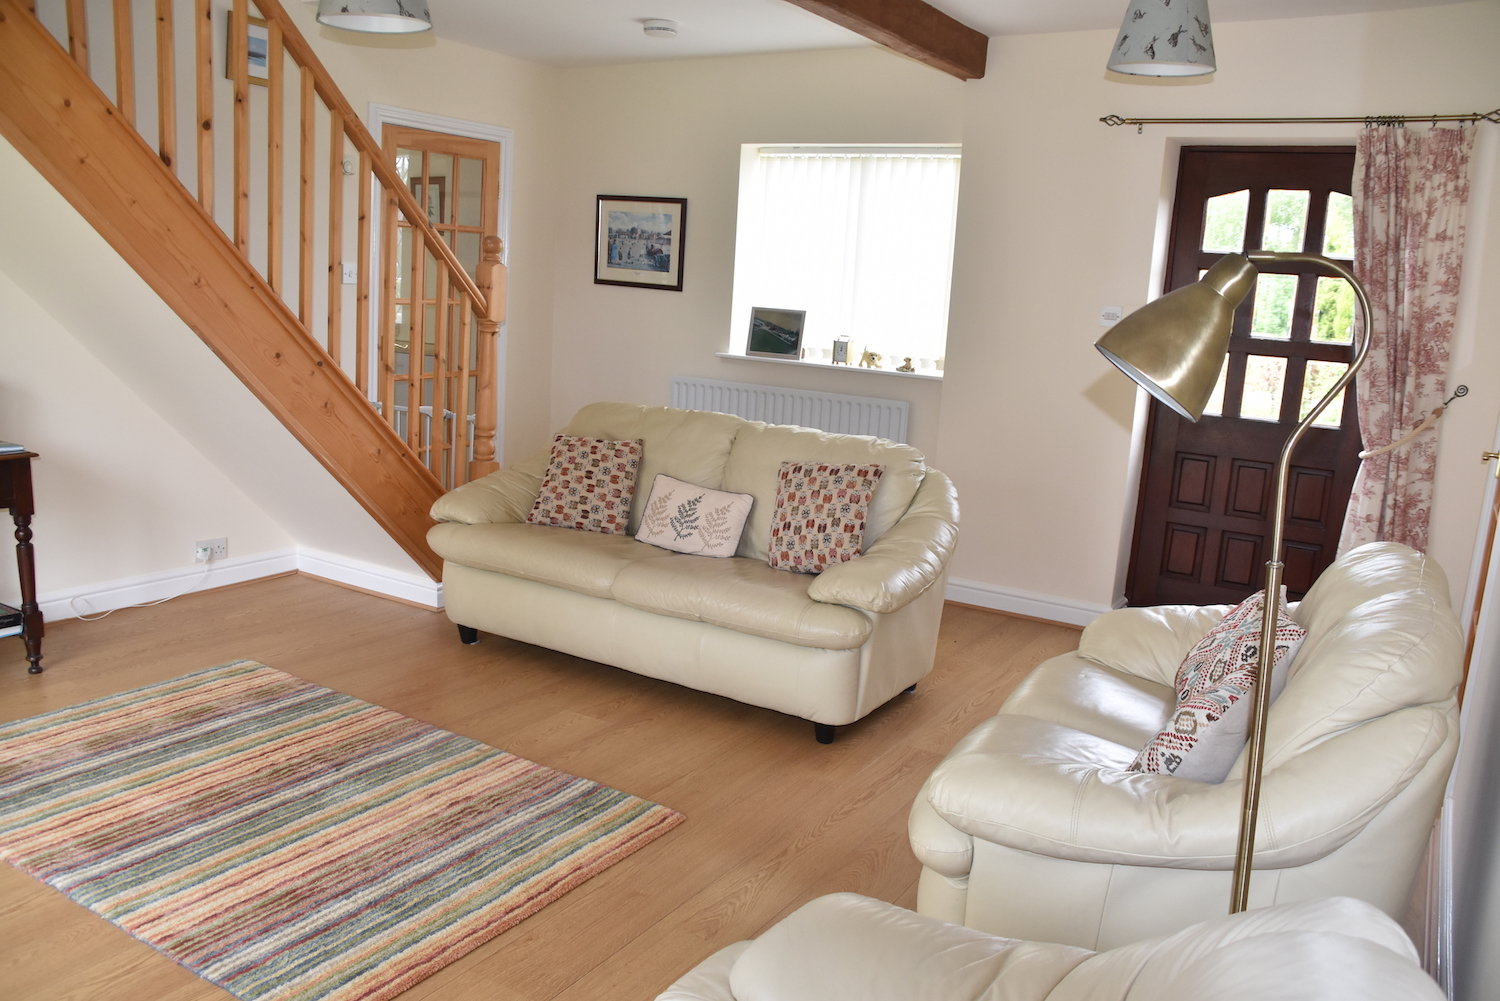 the saddle house - holiday cottage in boston lincolnshire, picture of our lounge area and door